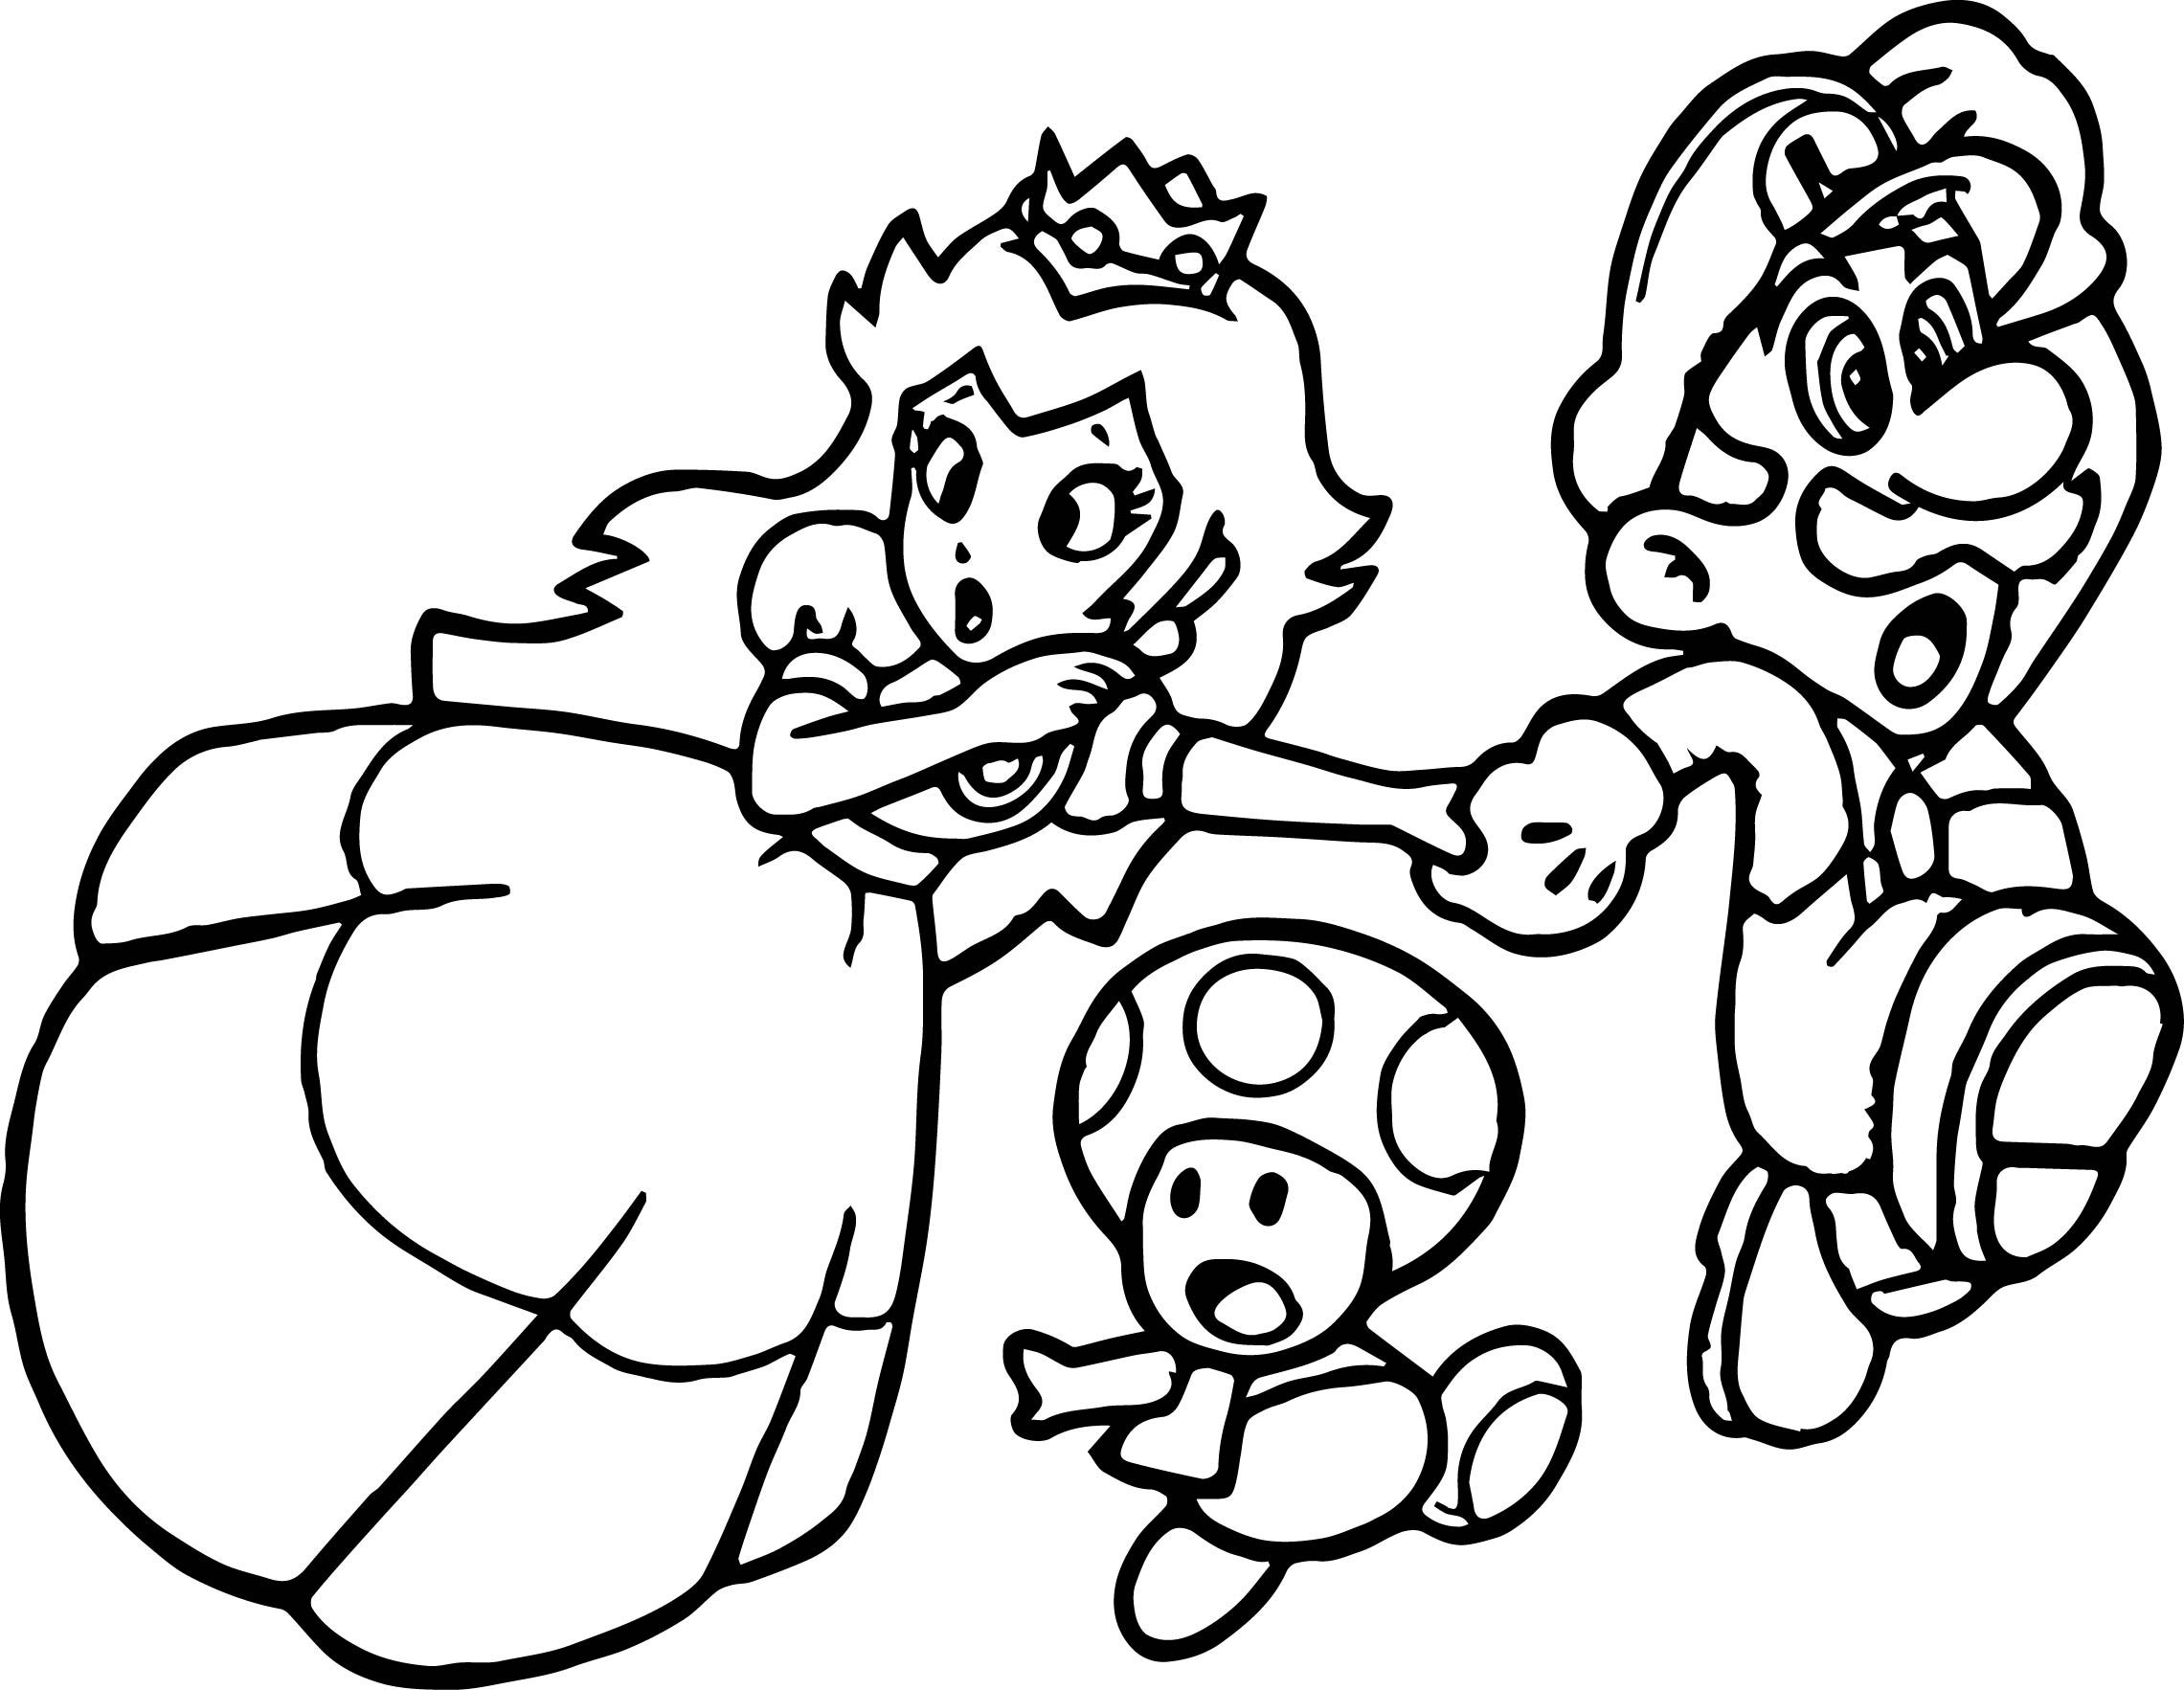 Super Mario Princess Mushroom Coloring Page Super Mario Coloring Pages Mario Coloring Pages Princess Coloring Pages